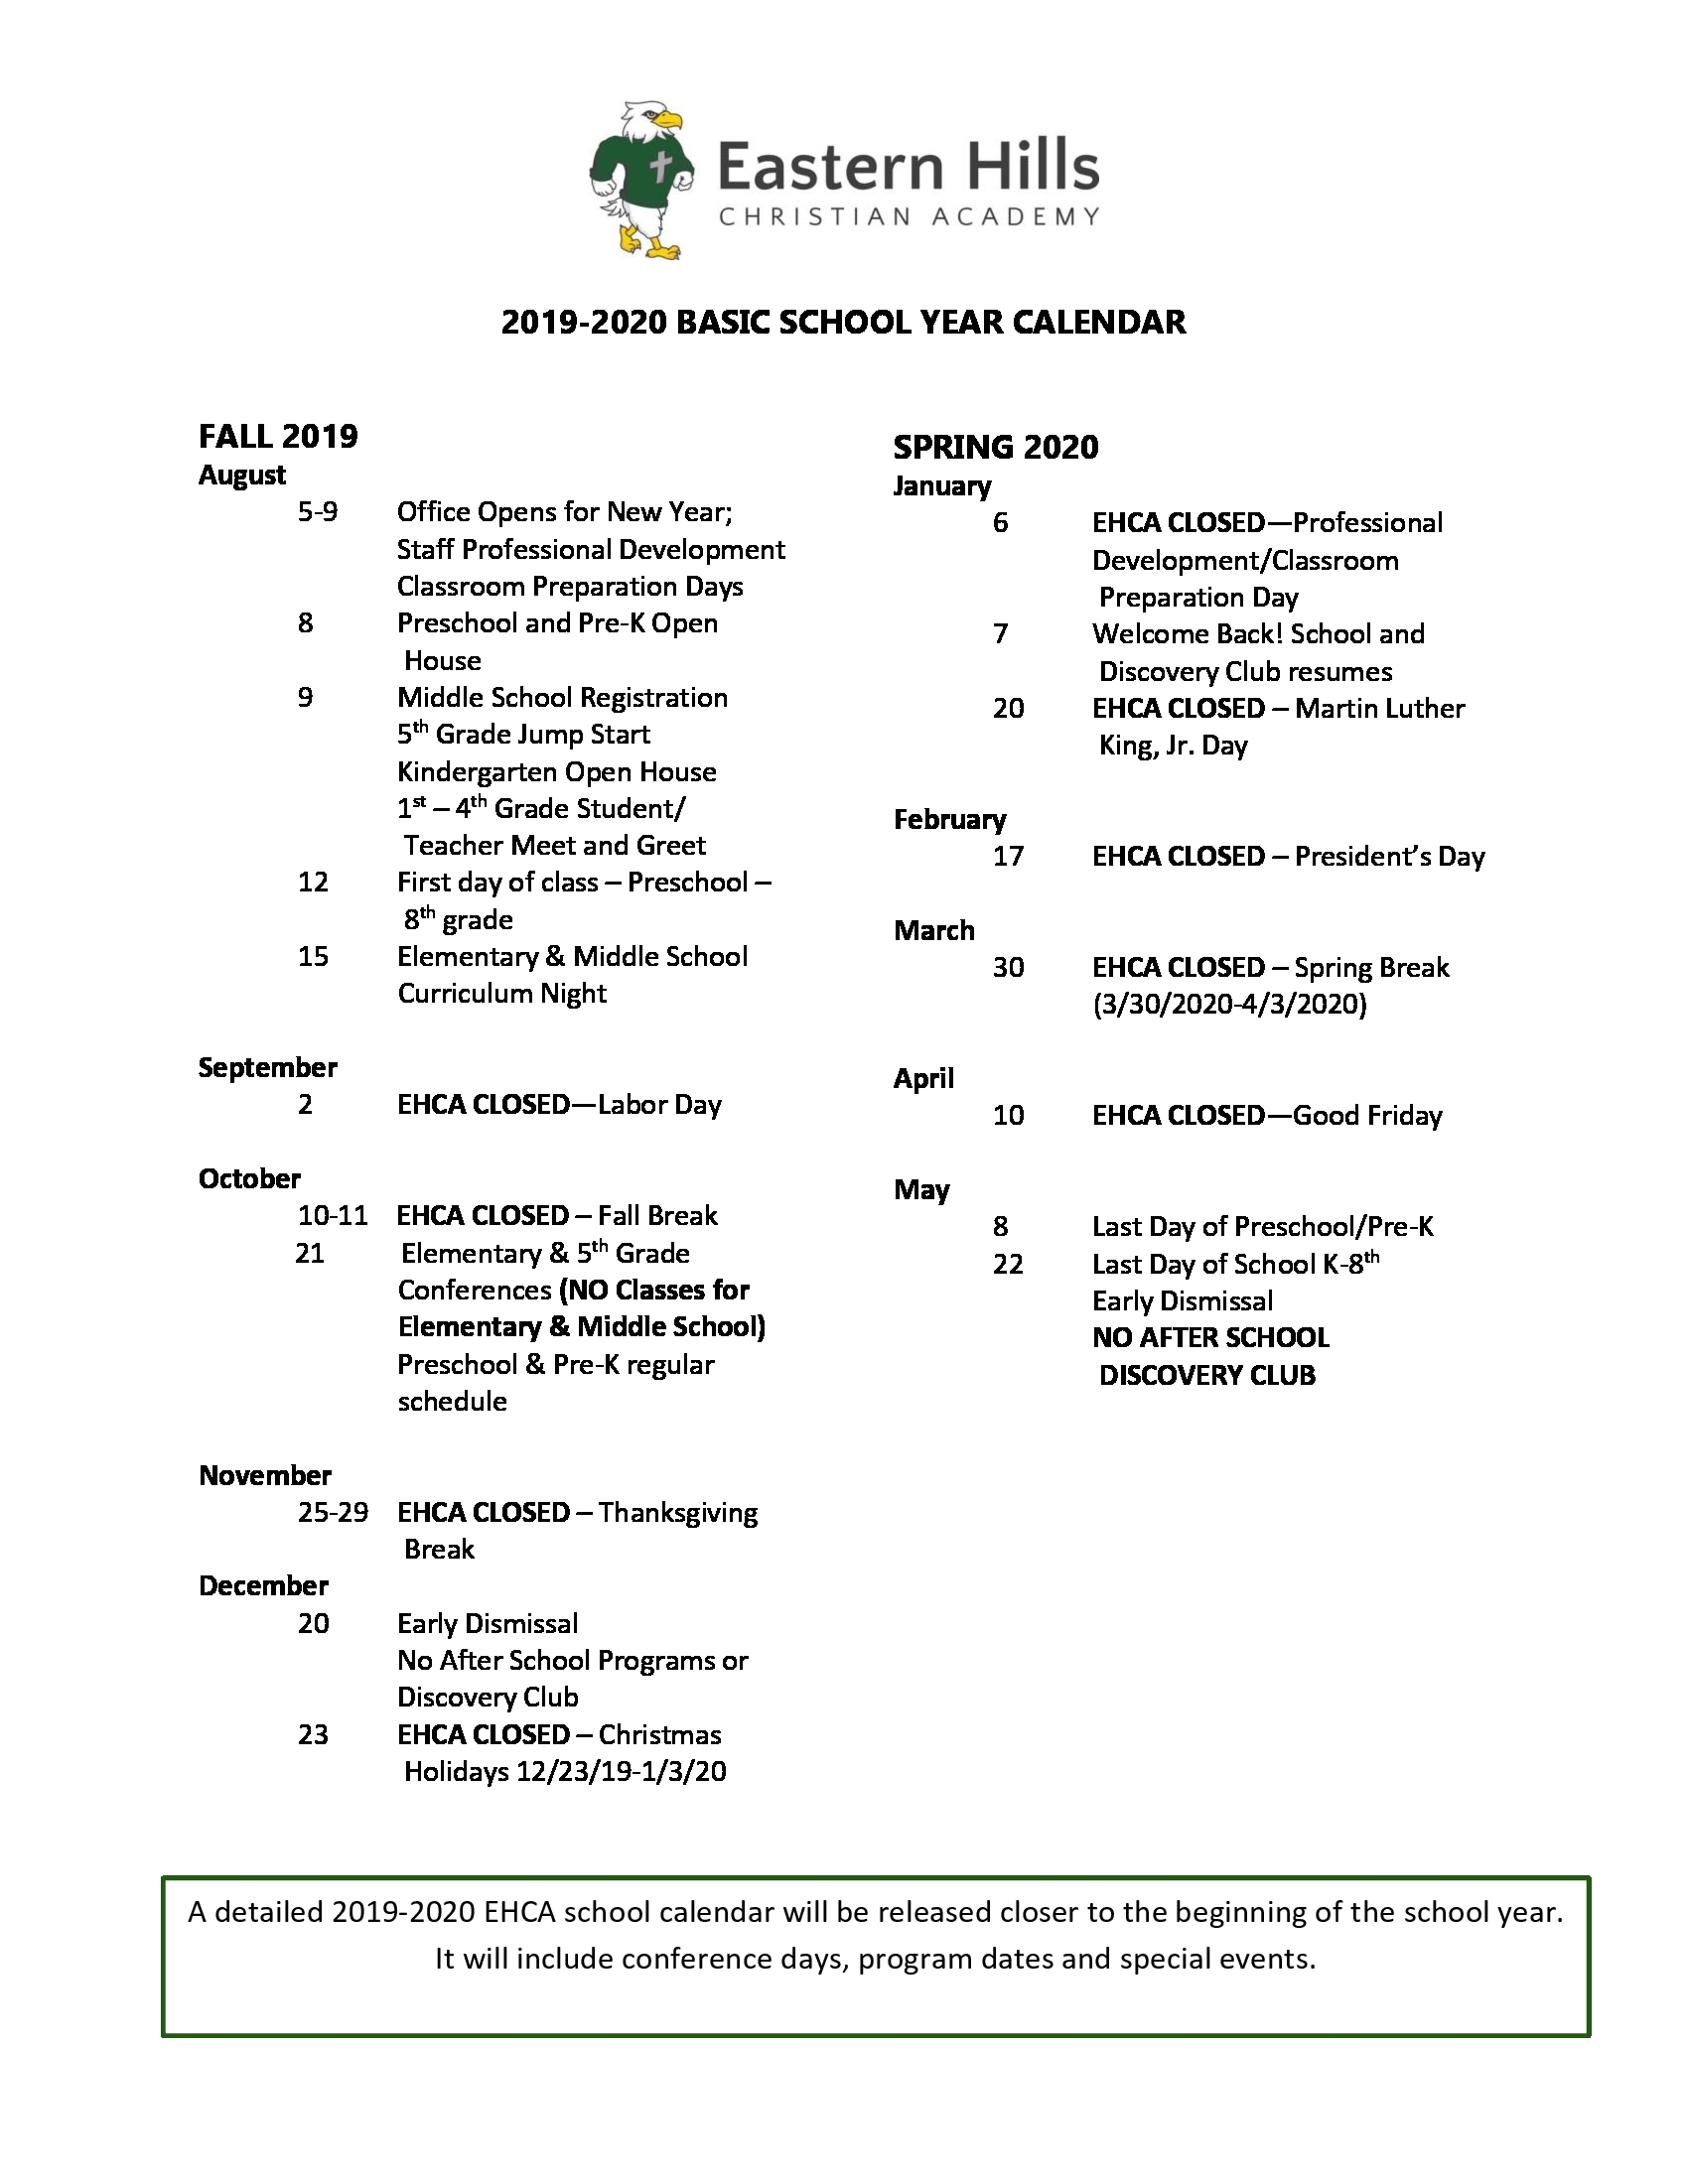 Eastern Hills Christian Academy | Preschool Elementary Middle School throughout Unm Calendar 2019-2020